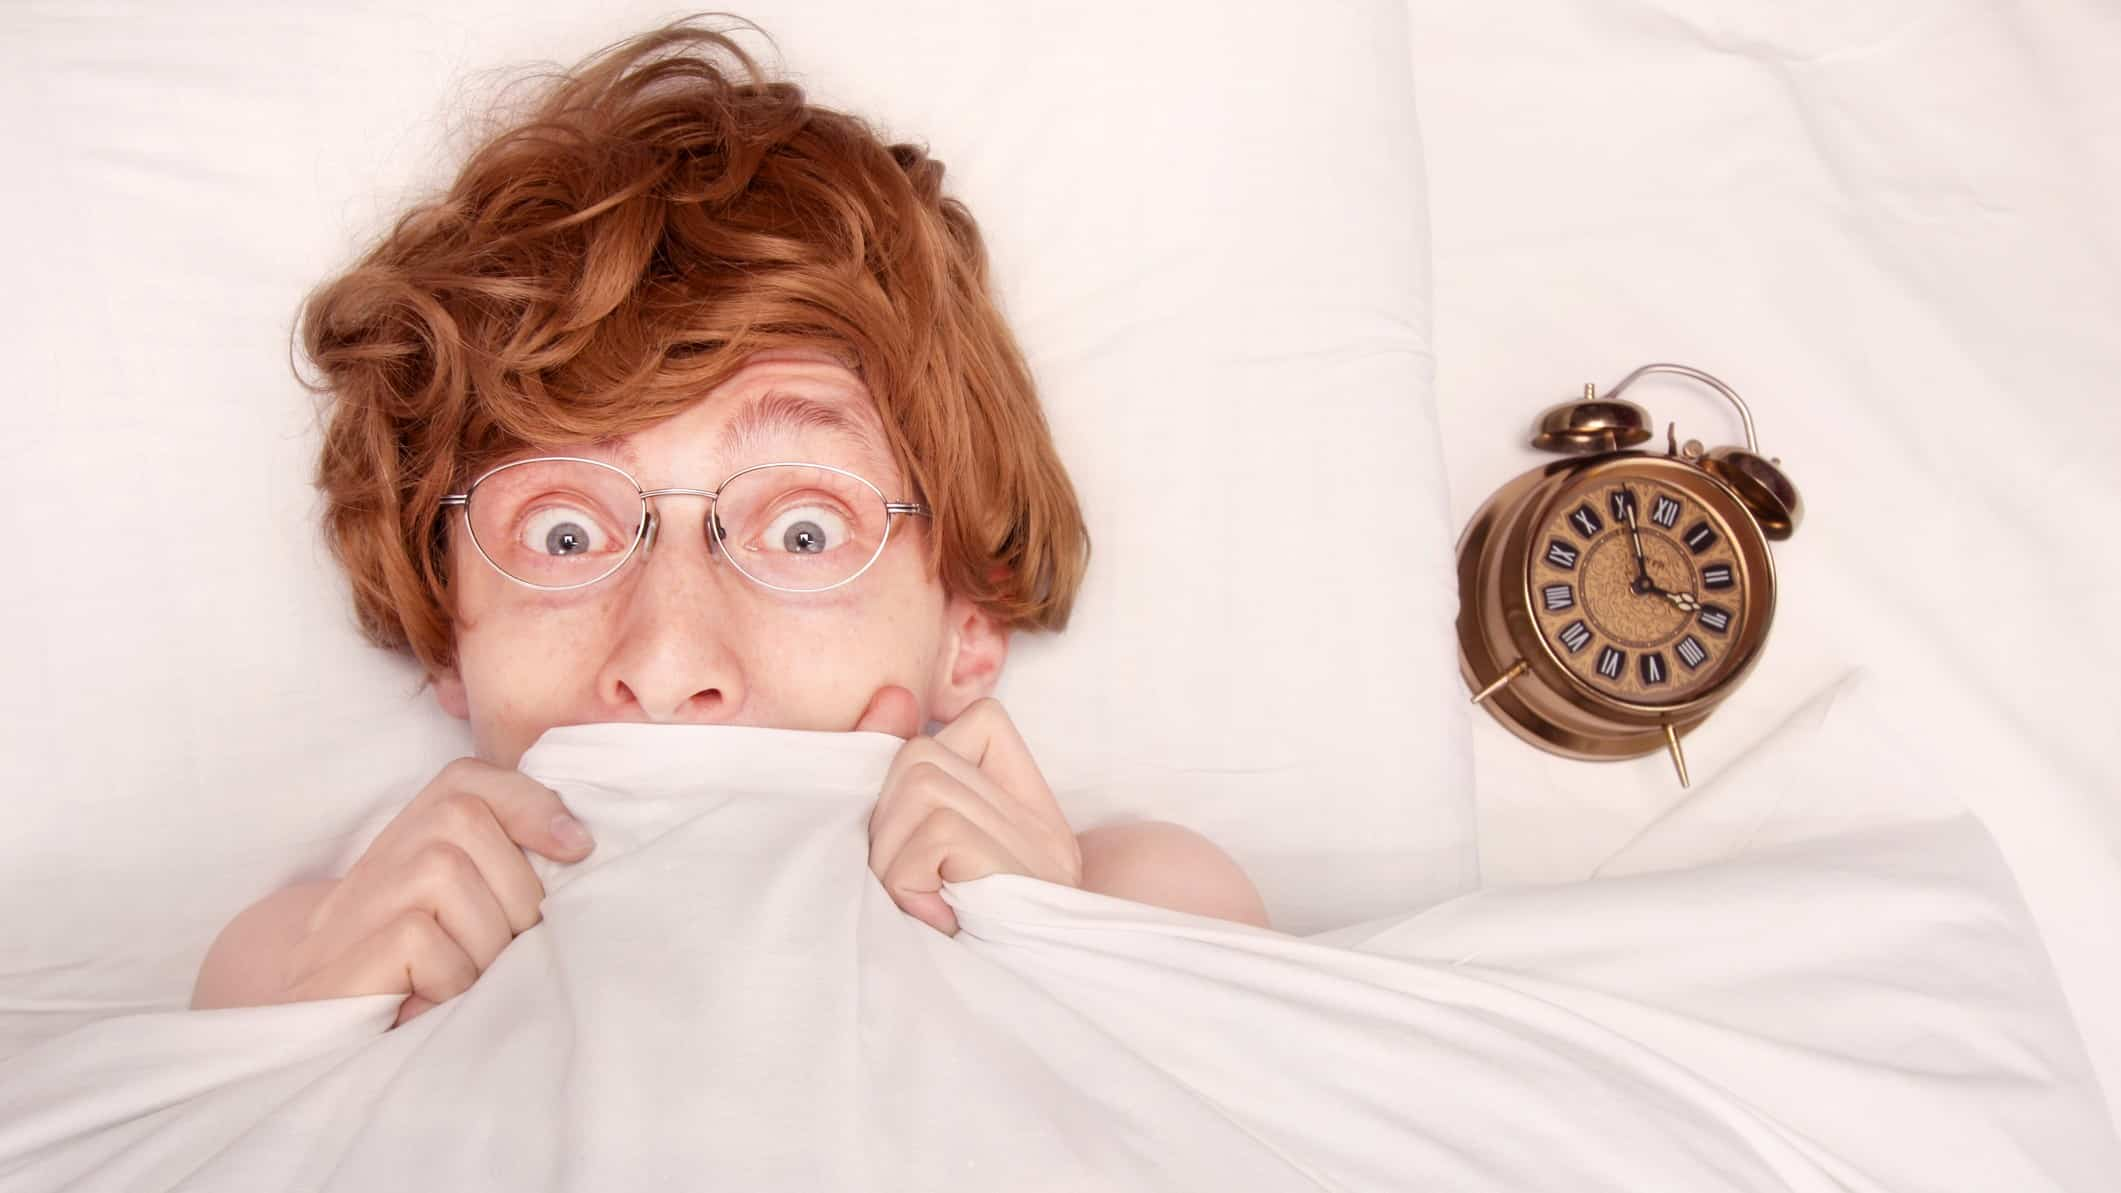 nerdy looking guy with glasses peeking out from under bed sheets